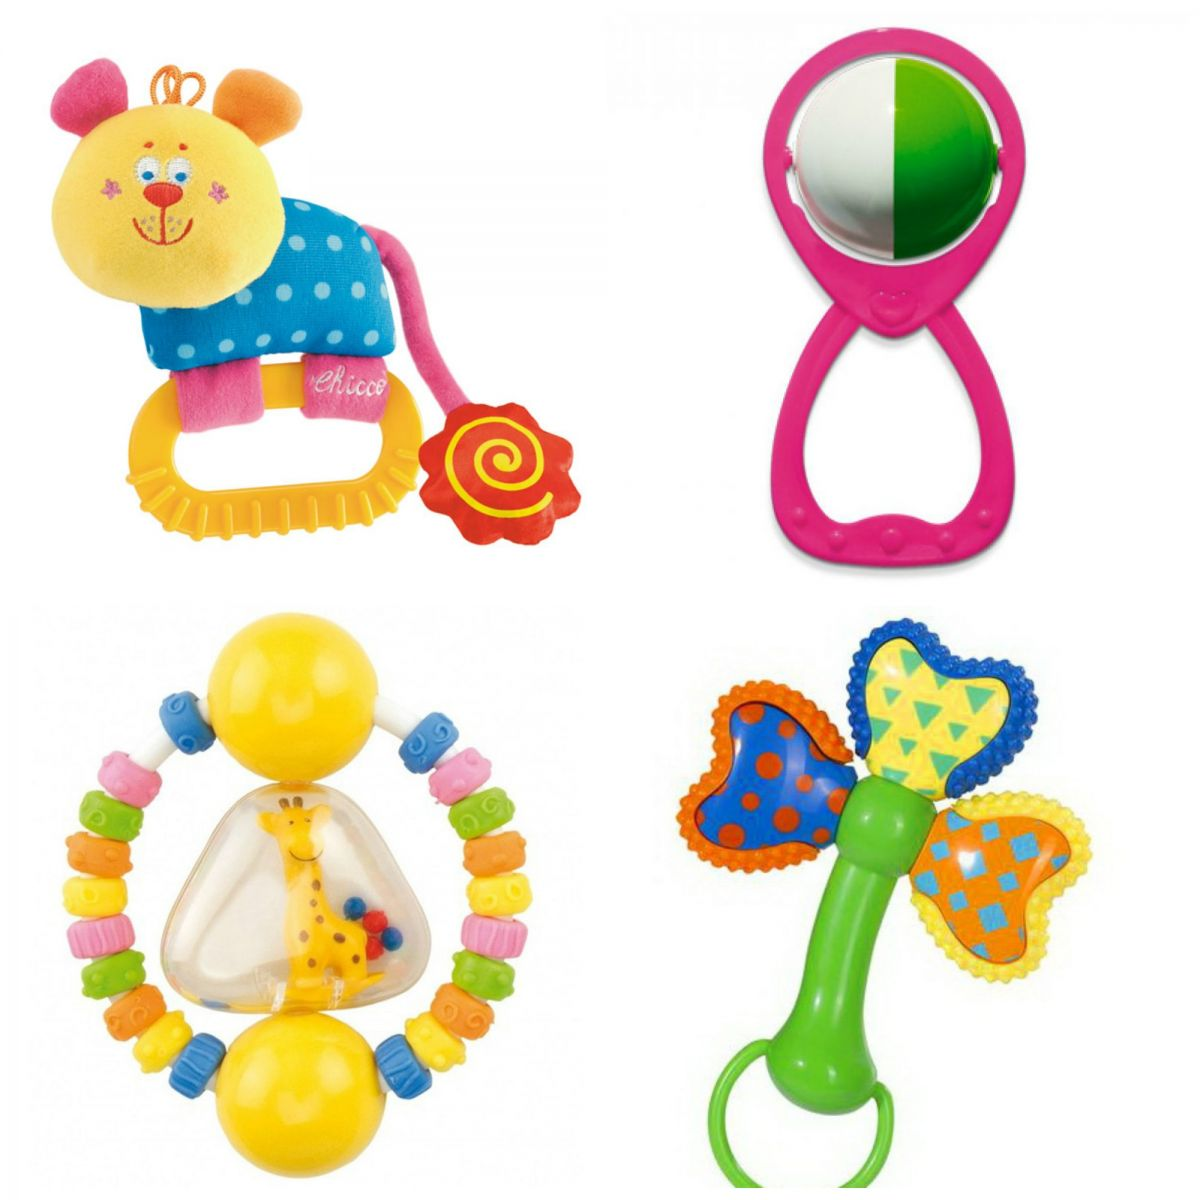 Toys for a month-old baby. Rattles